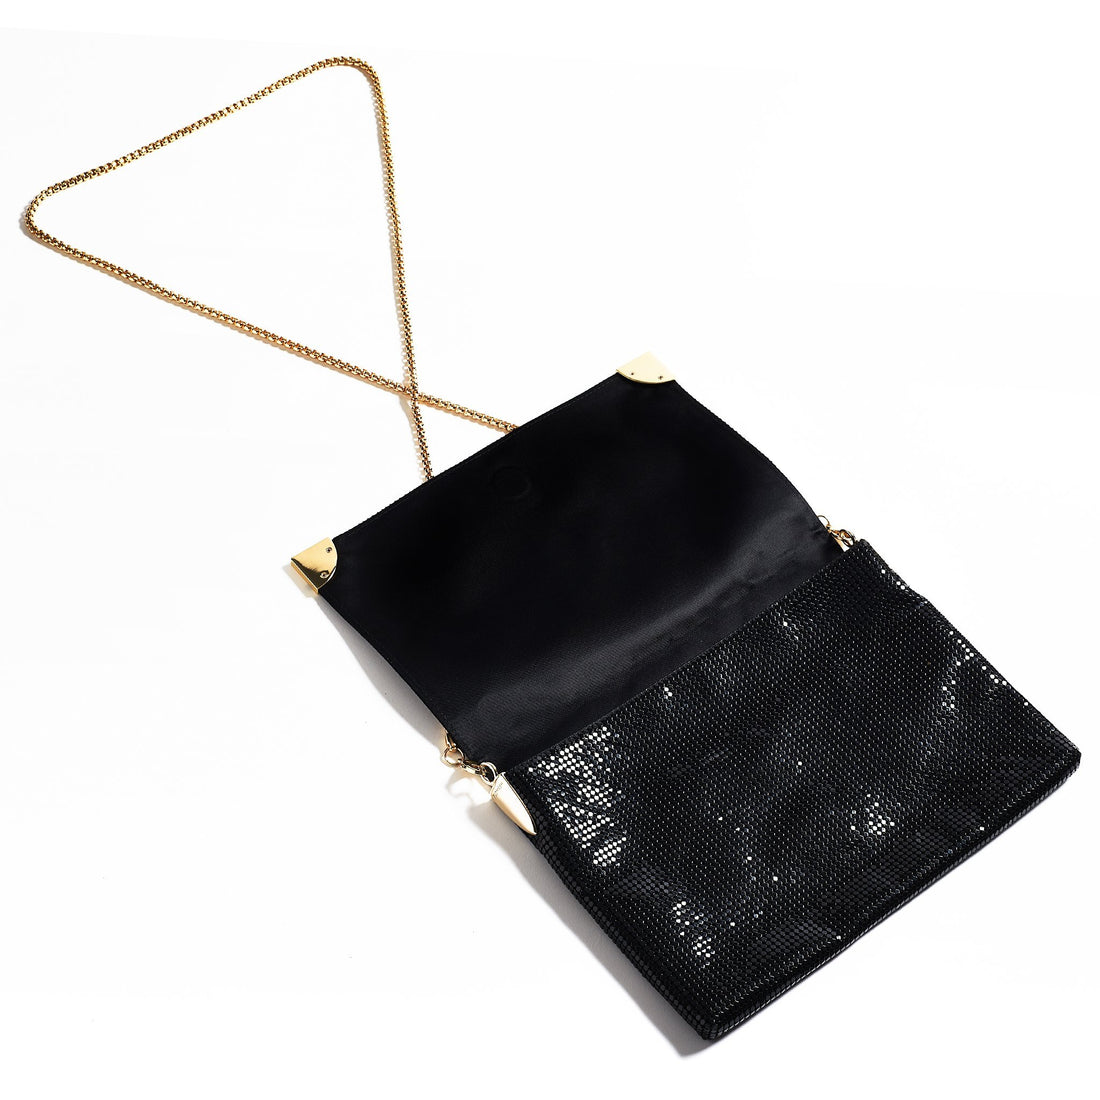 CARLA ZAMPATTI 55TH ANNIVERSARY BAG